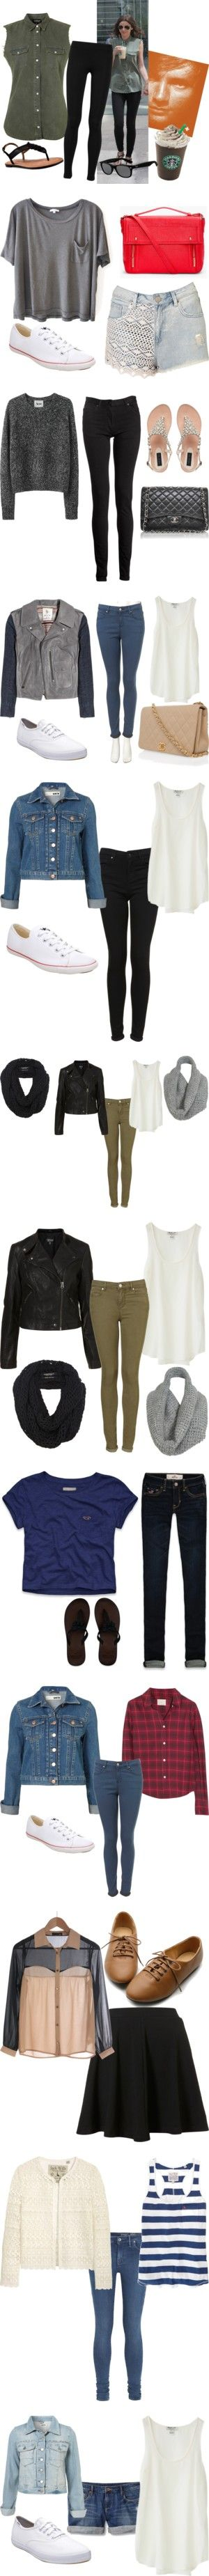 """""""Eleanor Calder Inspired"""" by samanthachamberlain ❤ liked on Polyvore BEST CLOTHES SCHEME EVER!!"""